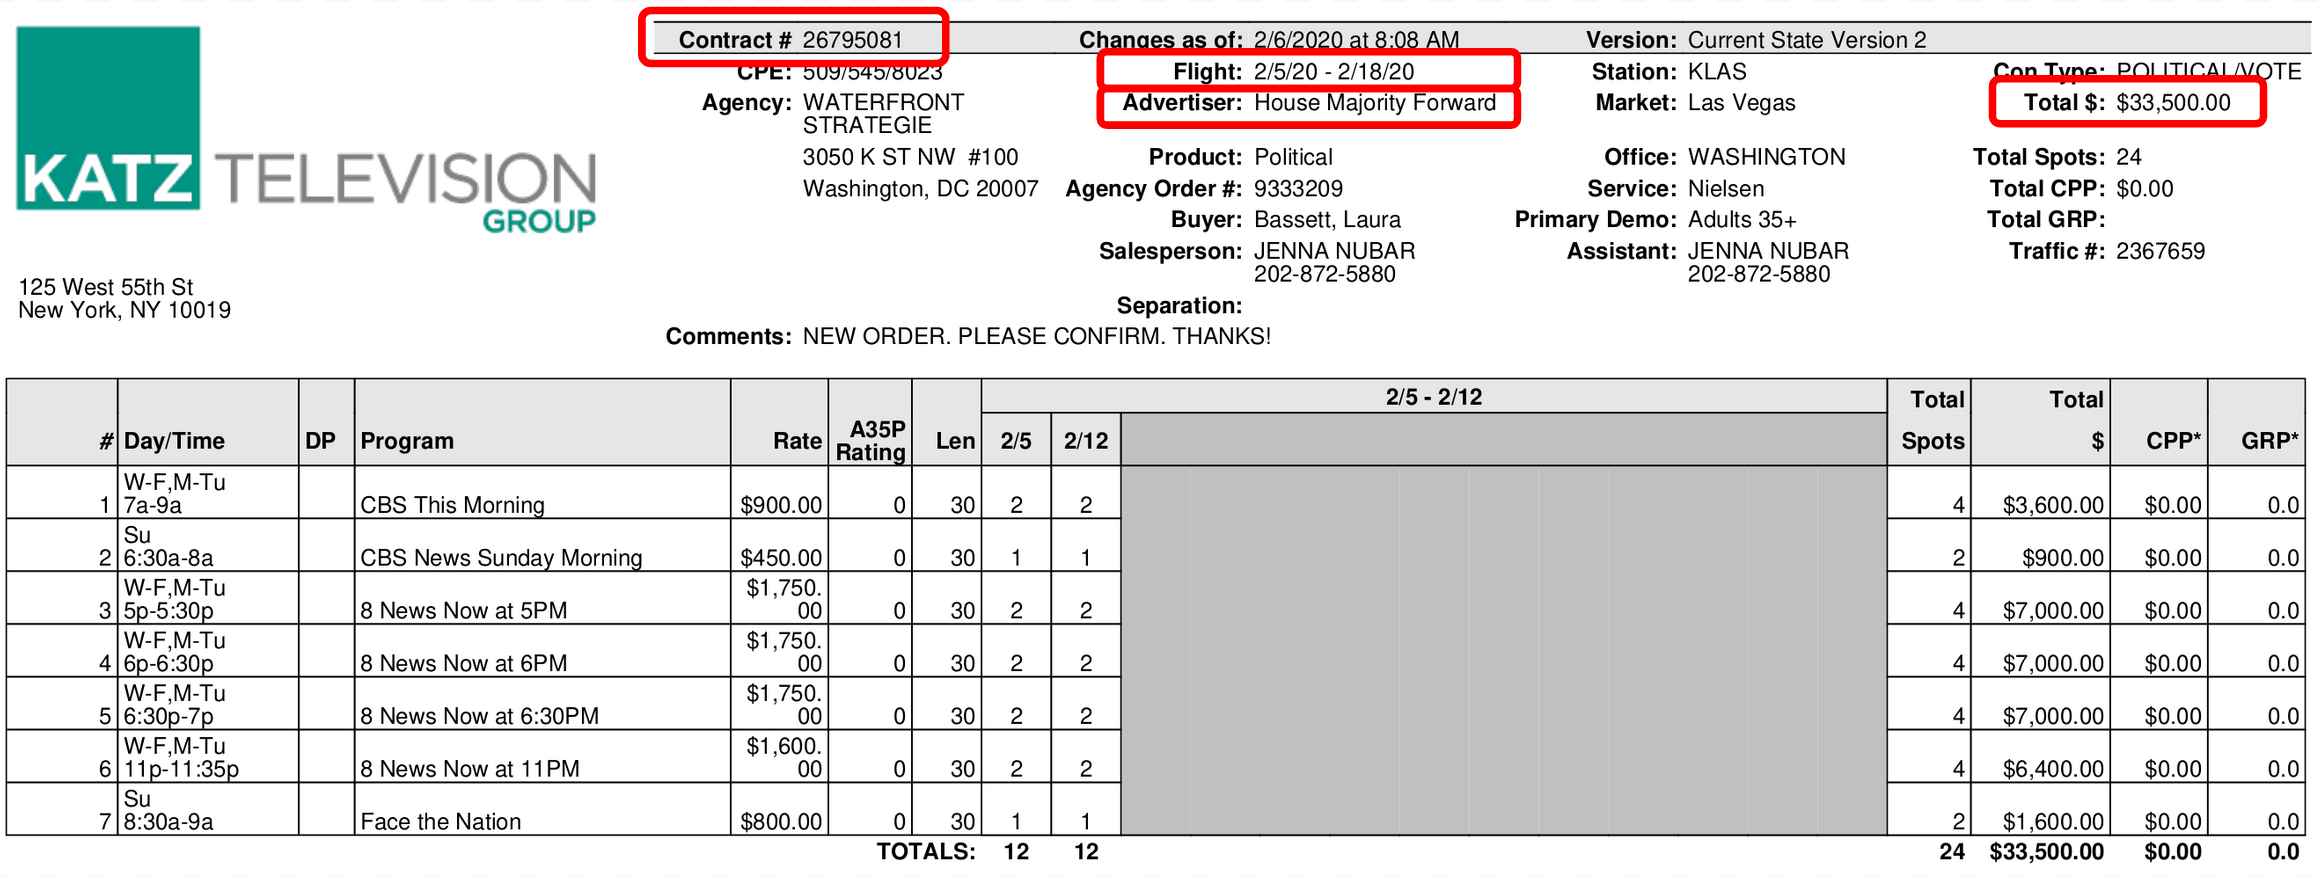 Annotated invoice example 1